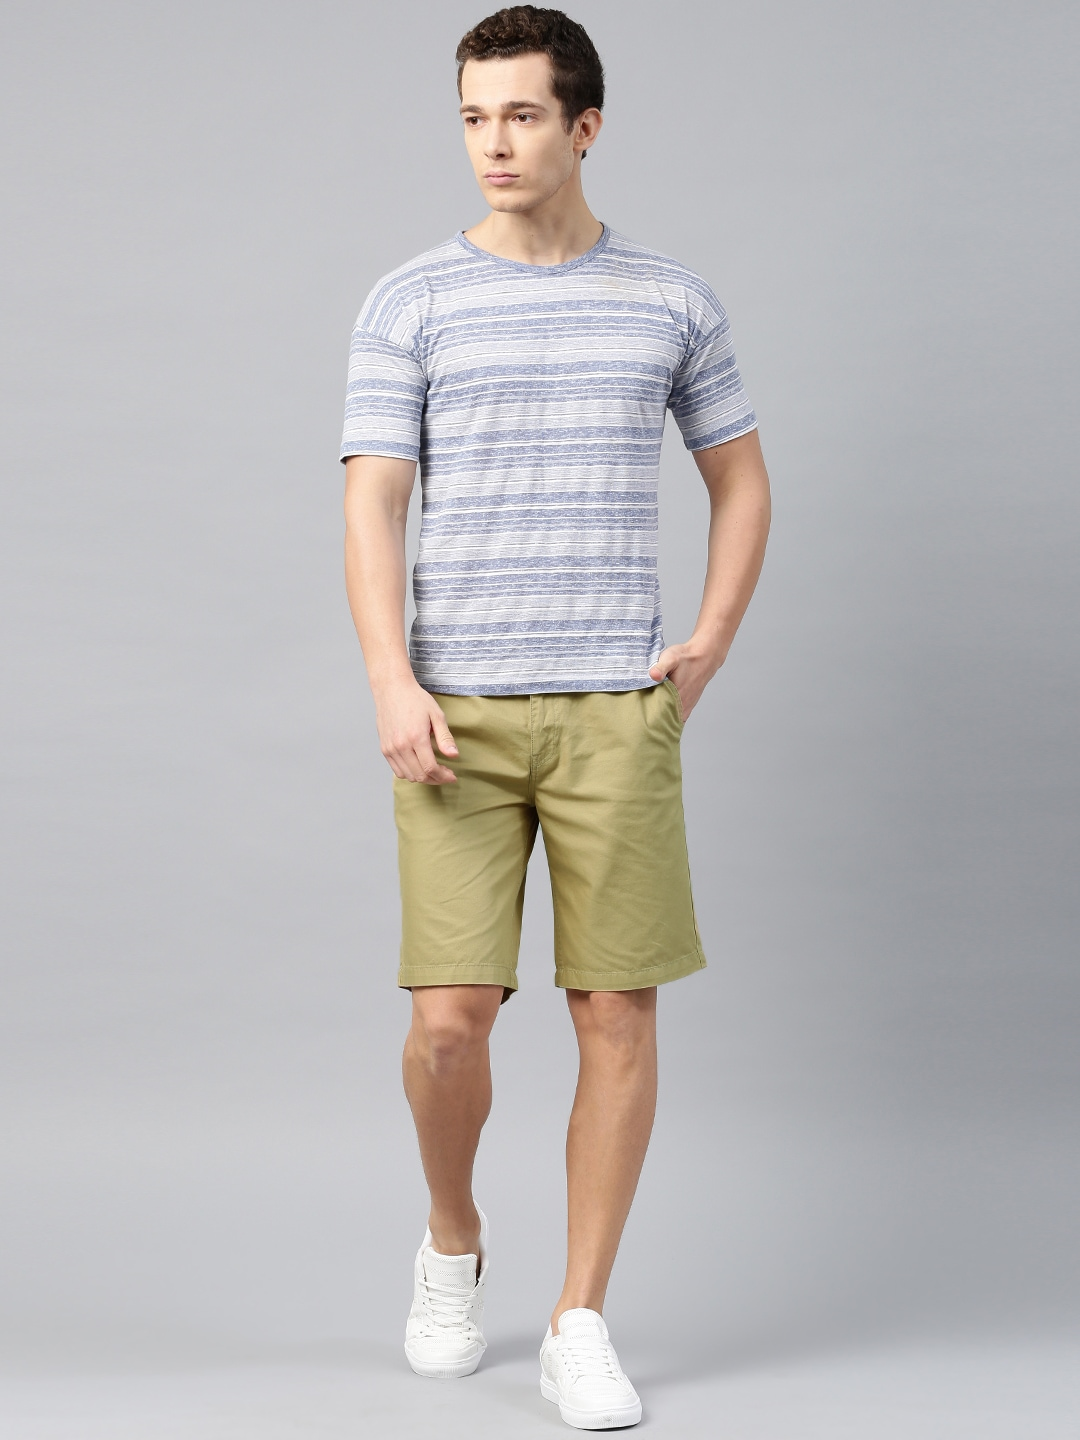 Khaki Shorts - Buy Khaki Shorts Online in India